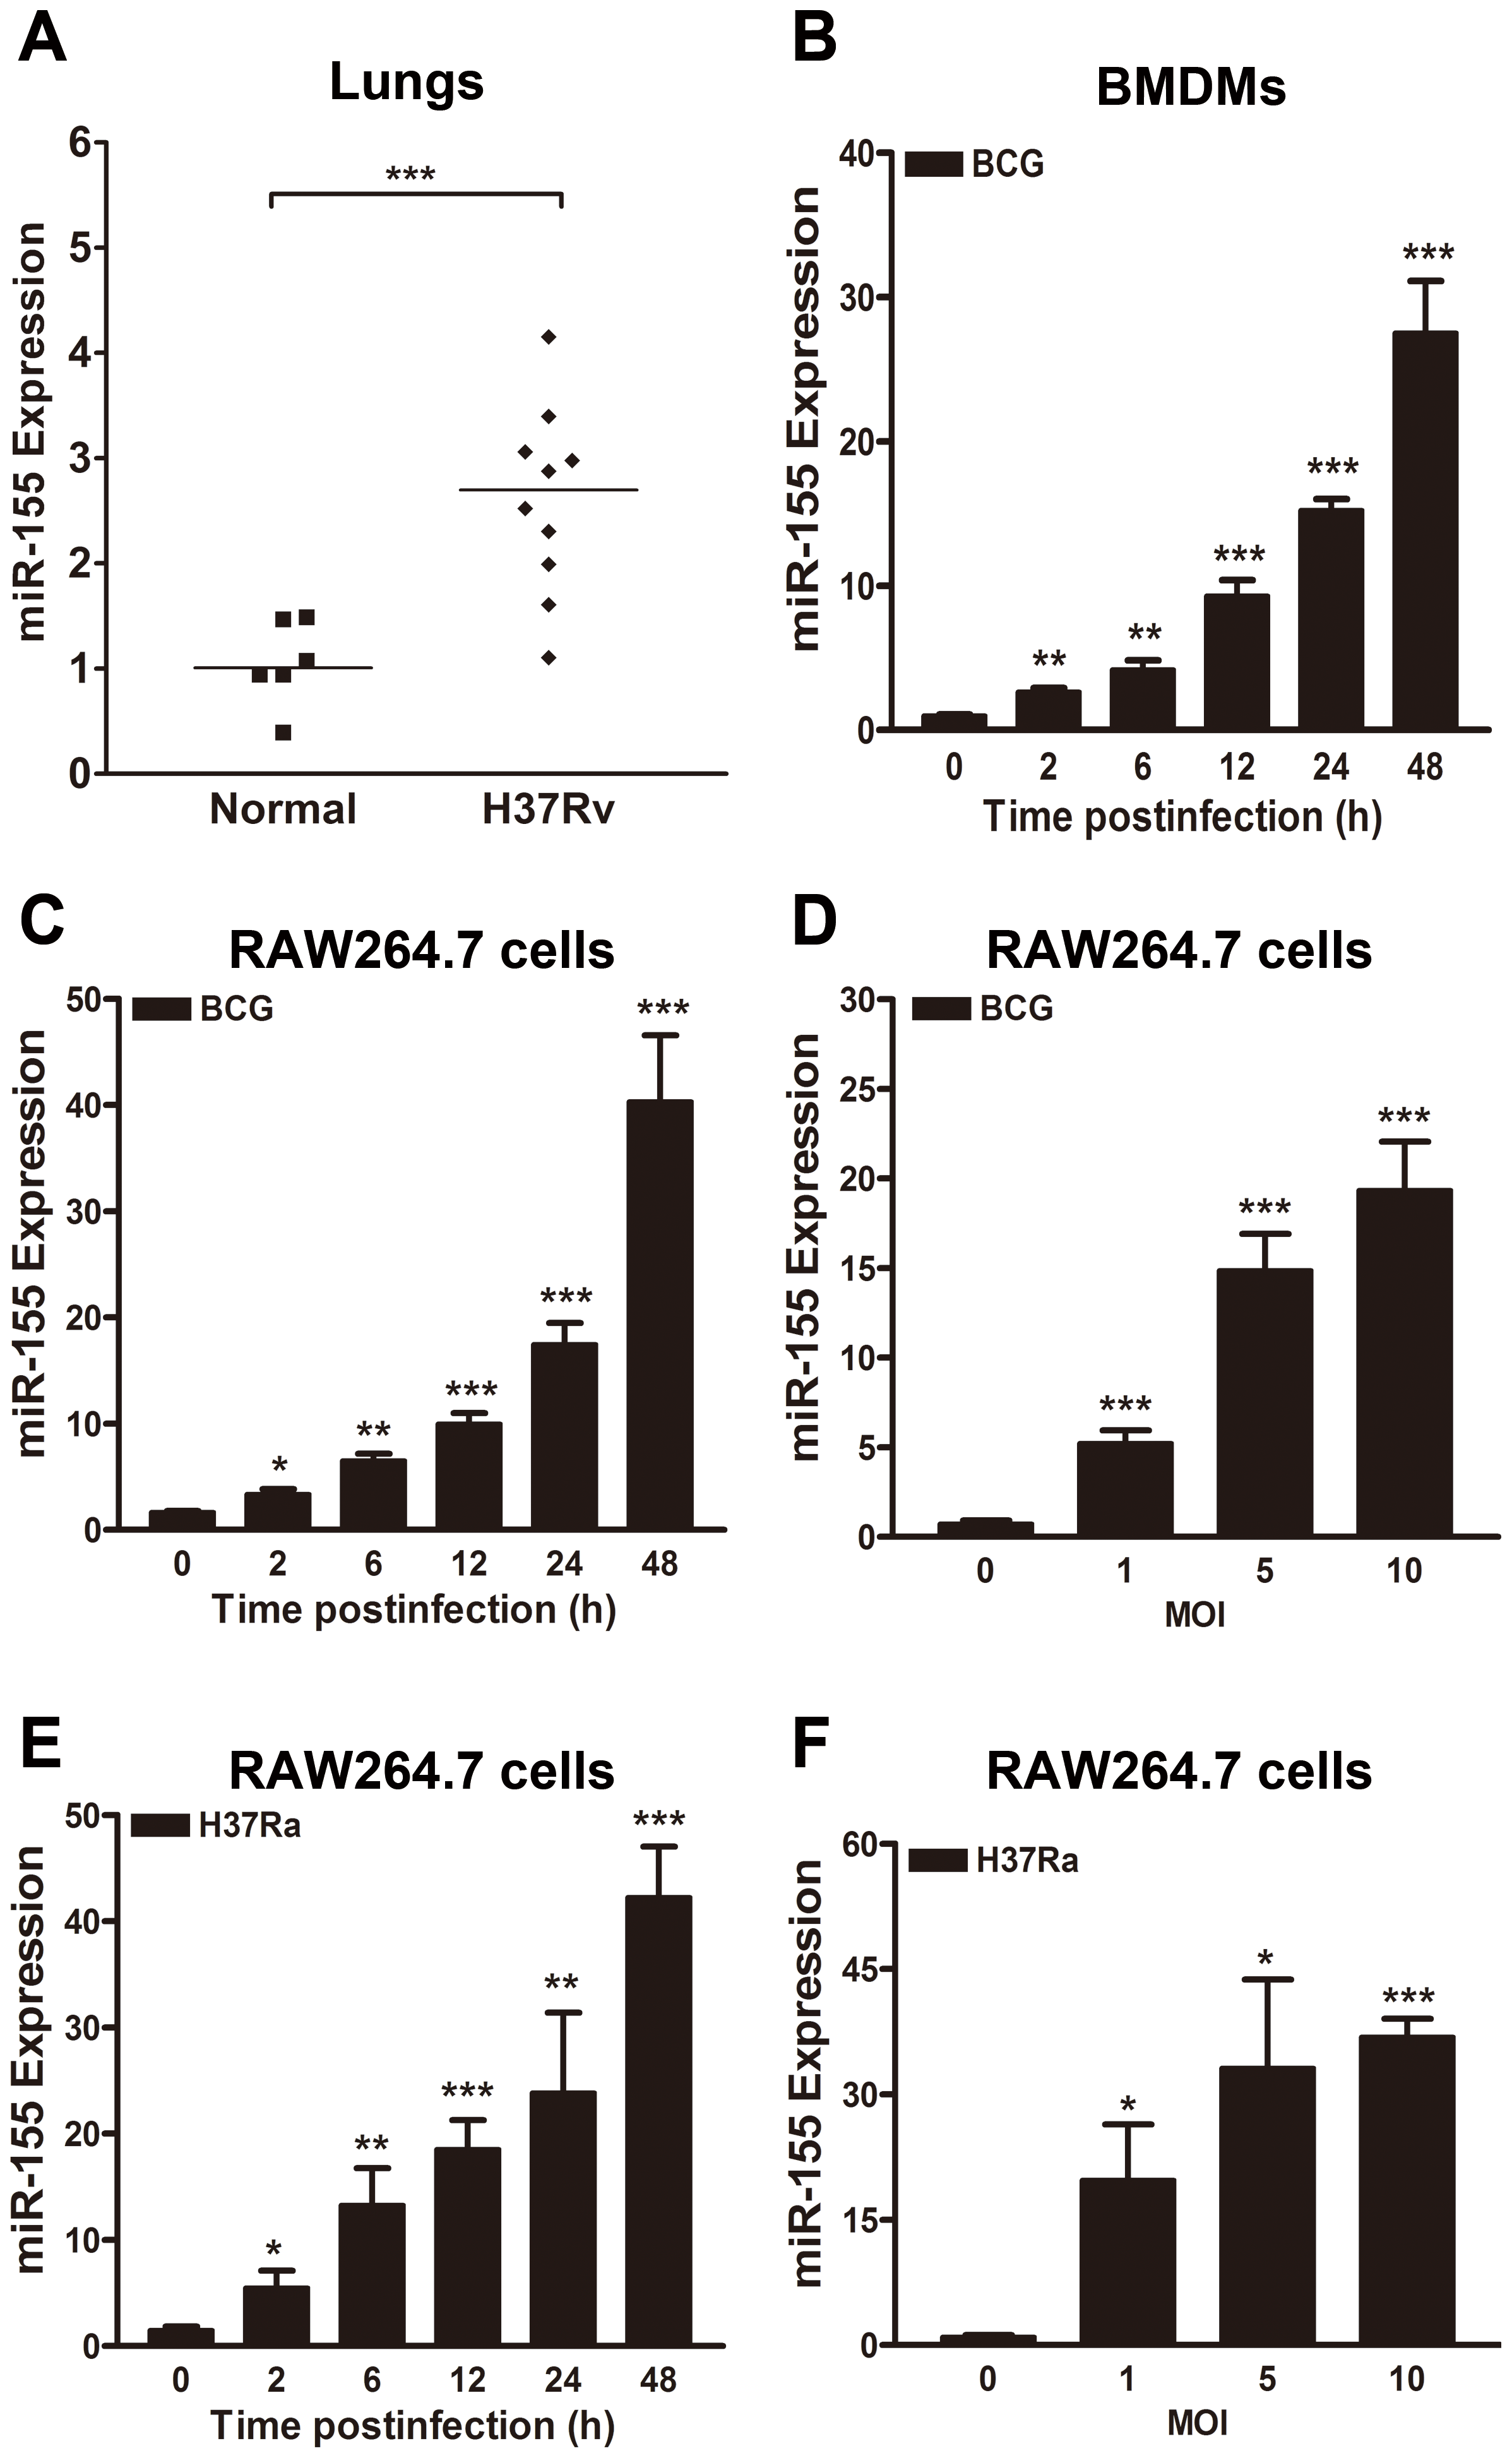 miR-155 expression is induced after mycobacterial infection.